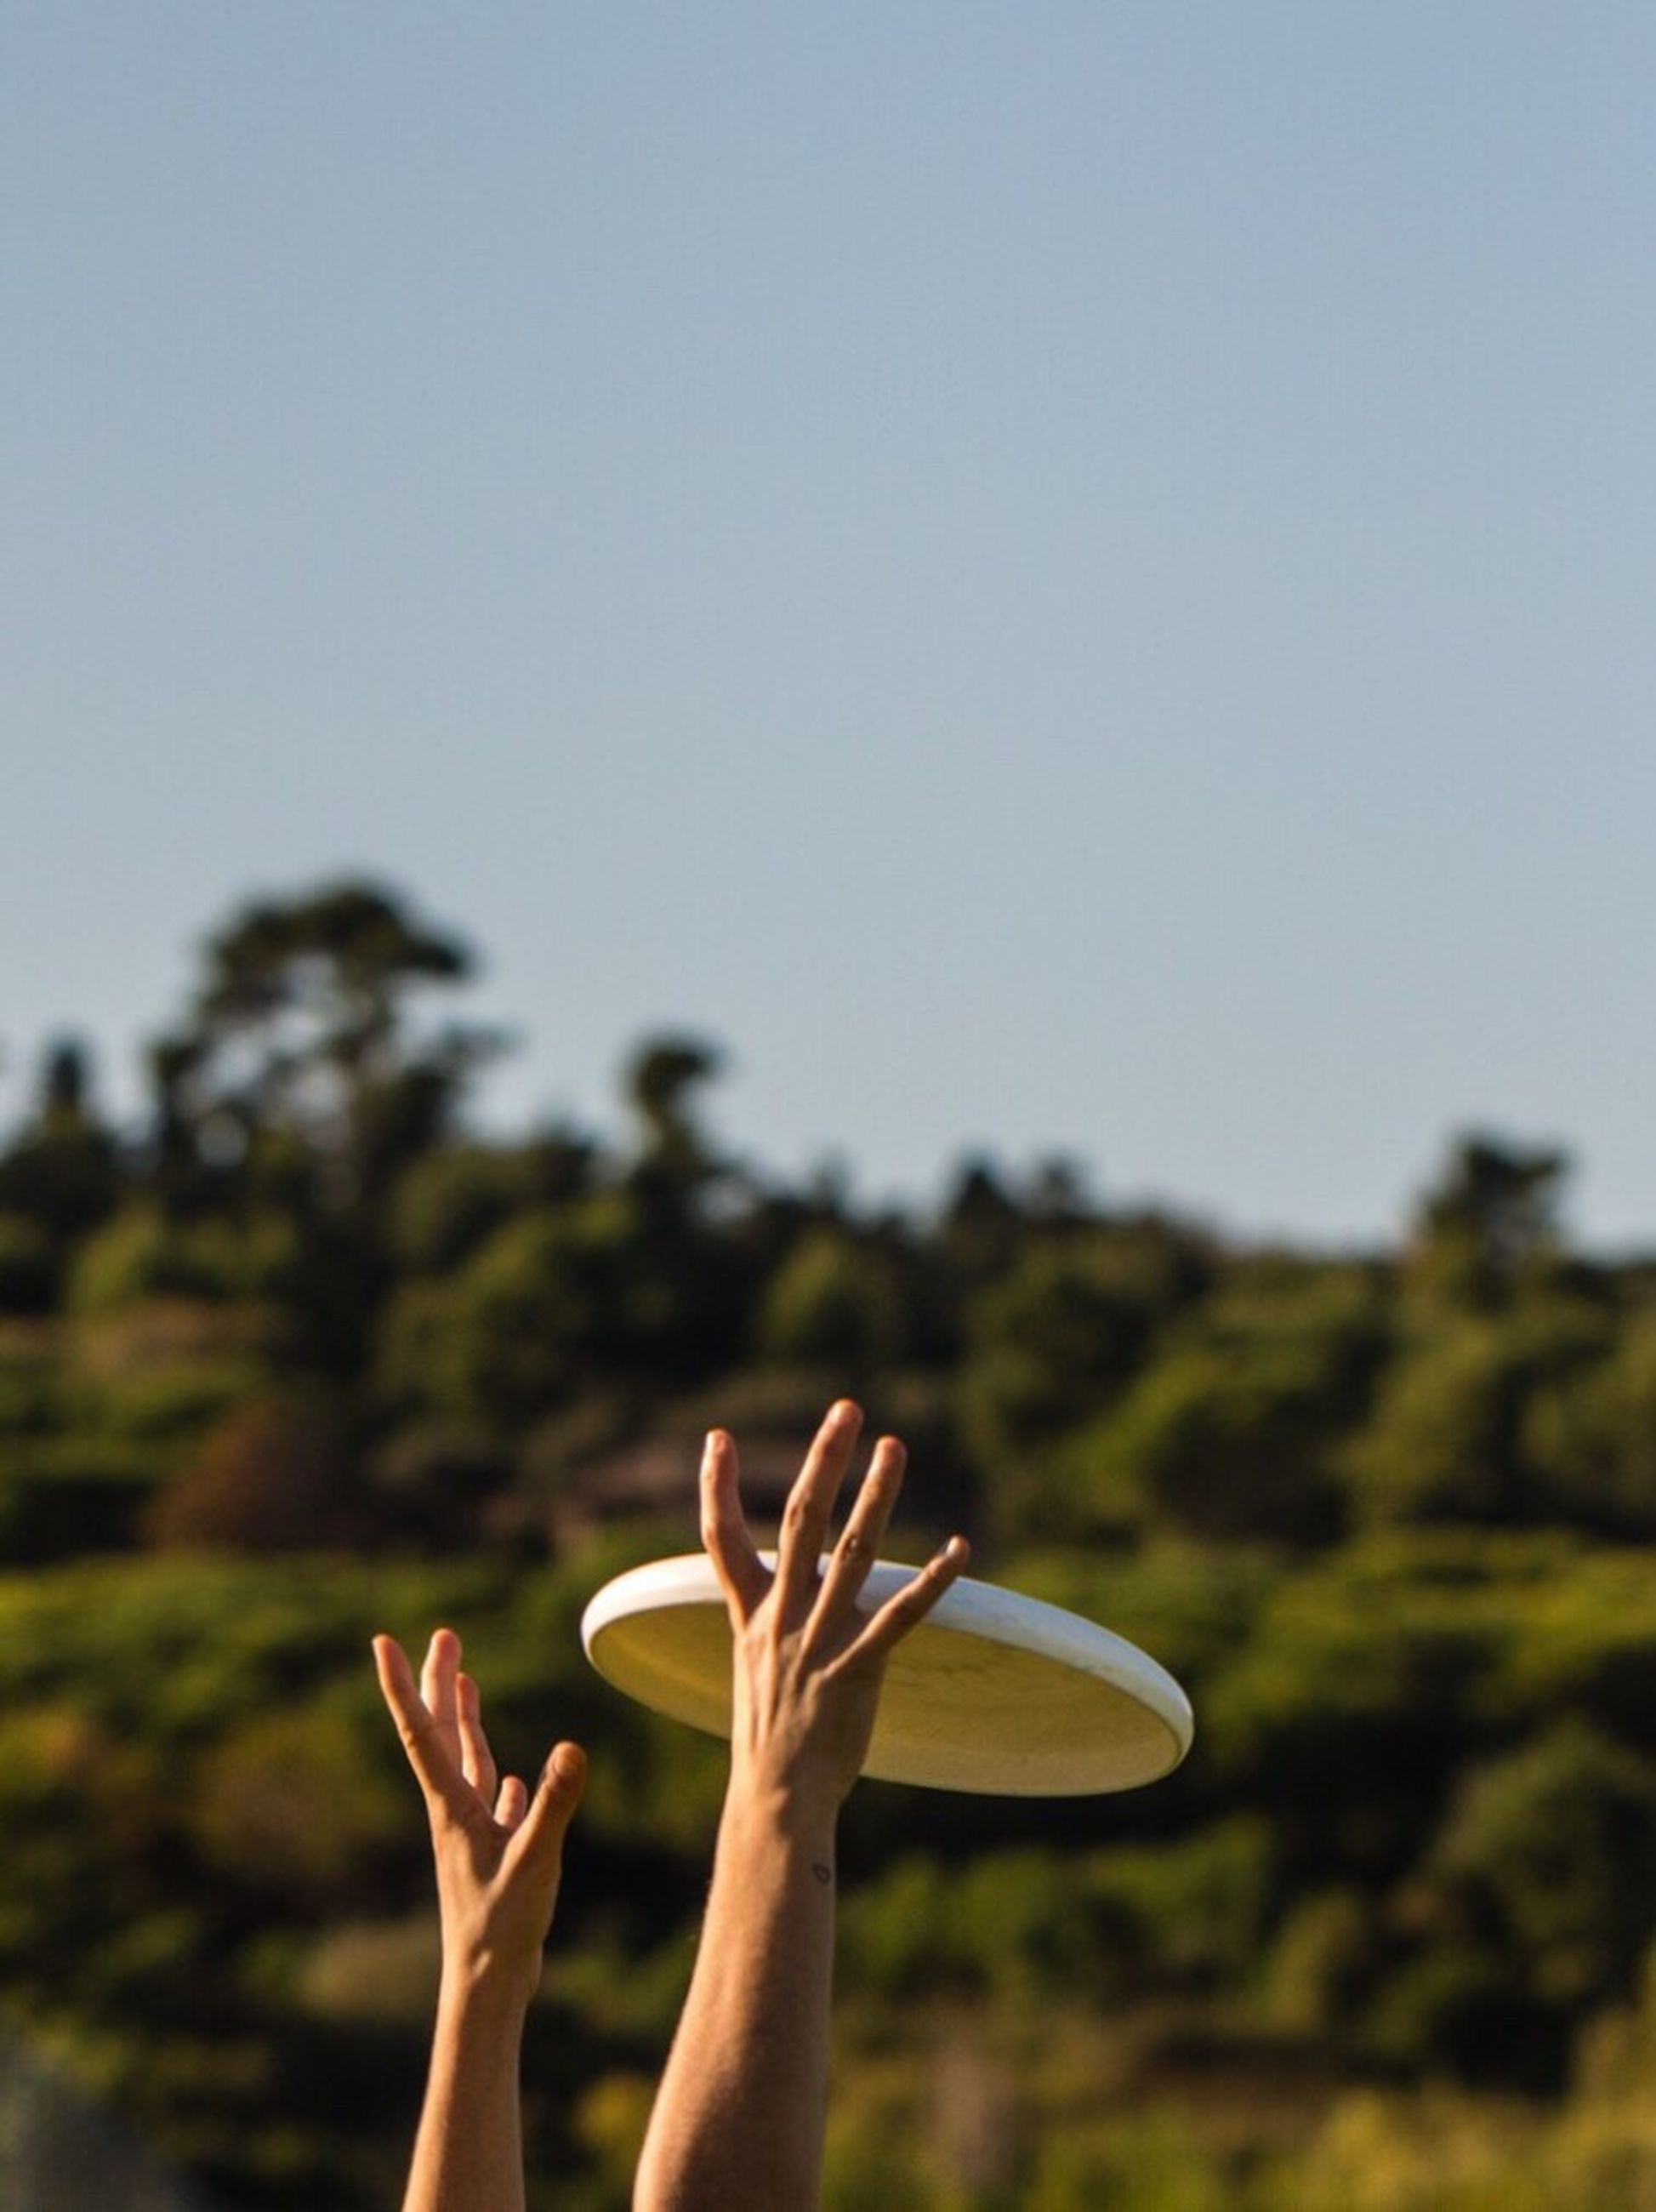 person, part of, cropped, focus on foreground, holding, lifestyles, leisure activity, human finger, clear sky, personal perspective, gesturing, day, outdoors, tranquility, green, tranquil scene, human skin, beauty in nature